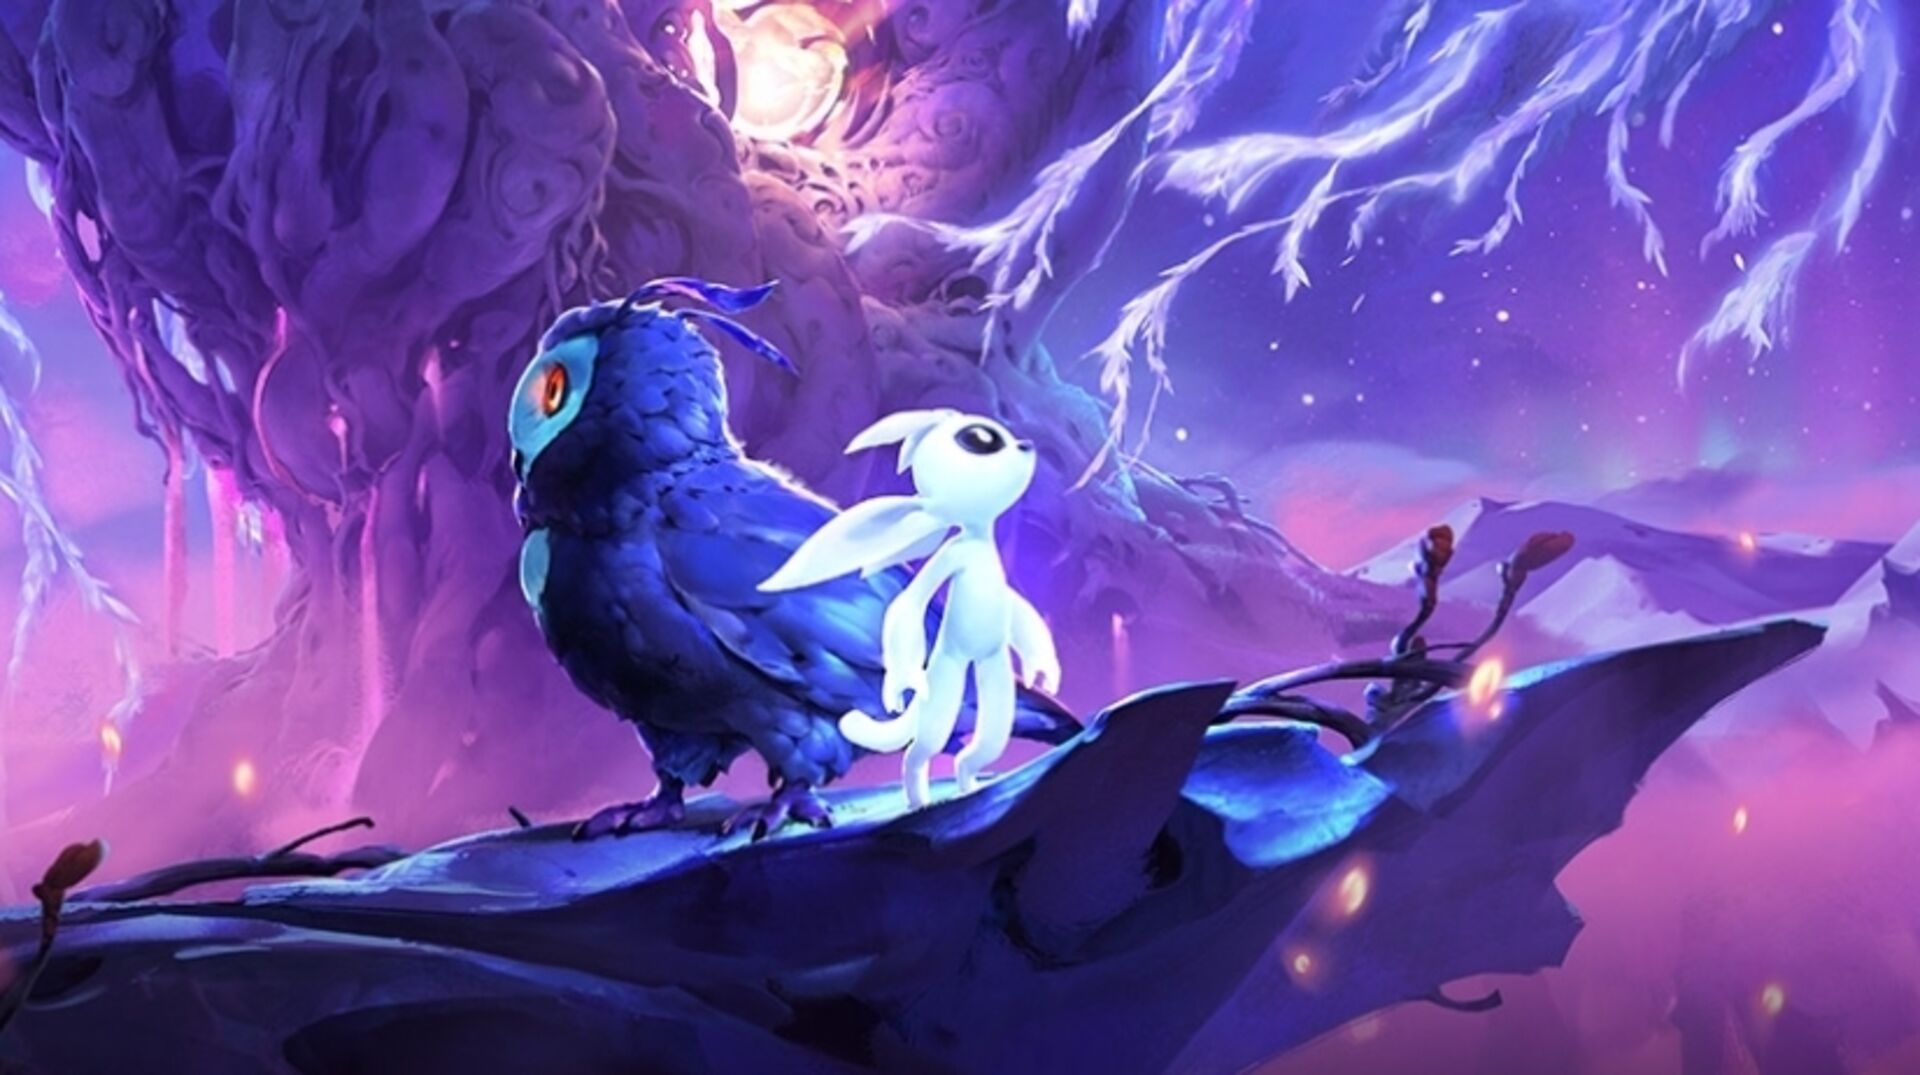 Ori and the Will of the Wisps is a triple-A 2D Metroidvania